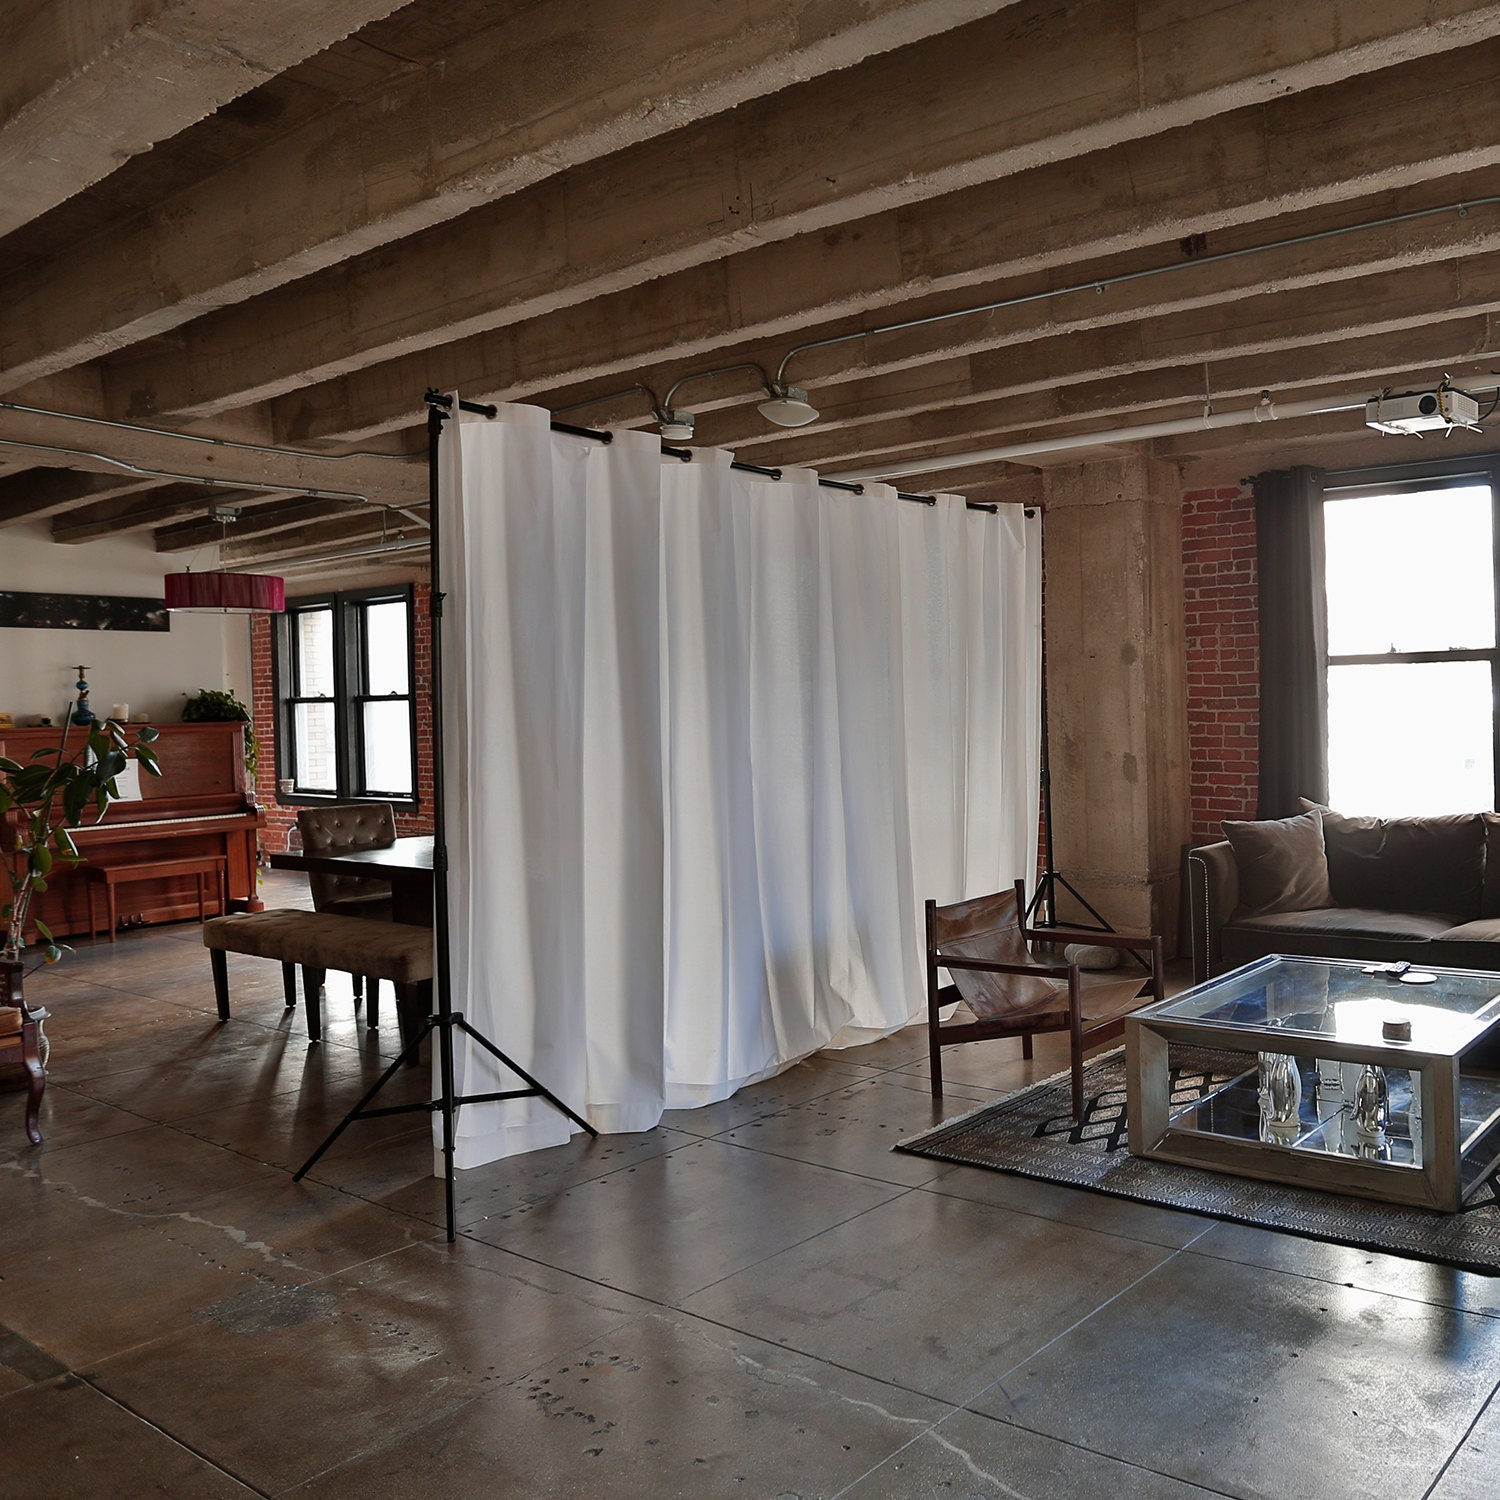 Free standing curtain room dividers - Muslin Freestanding Room Divider Kit For Rooms 8ft To 9ft Tall X 7ft To 50ft